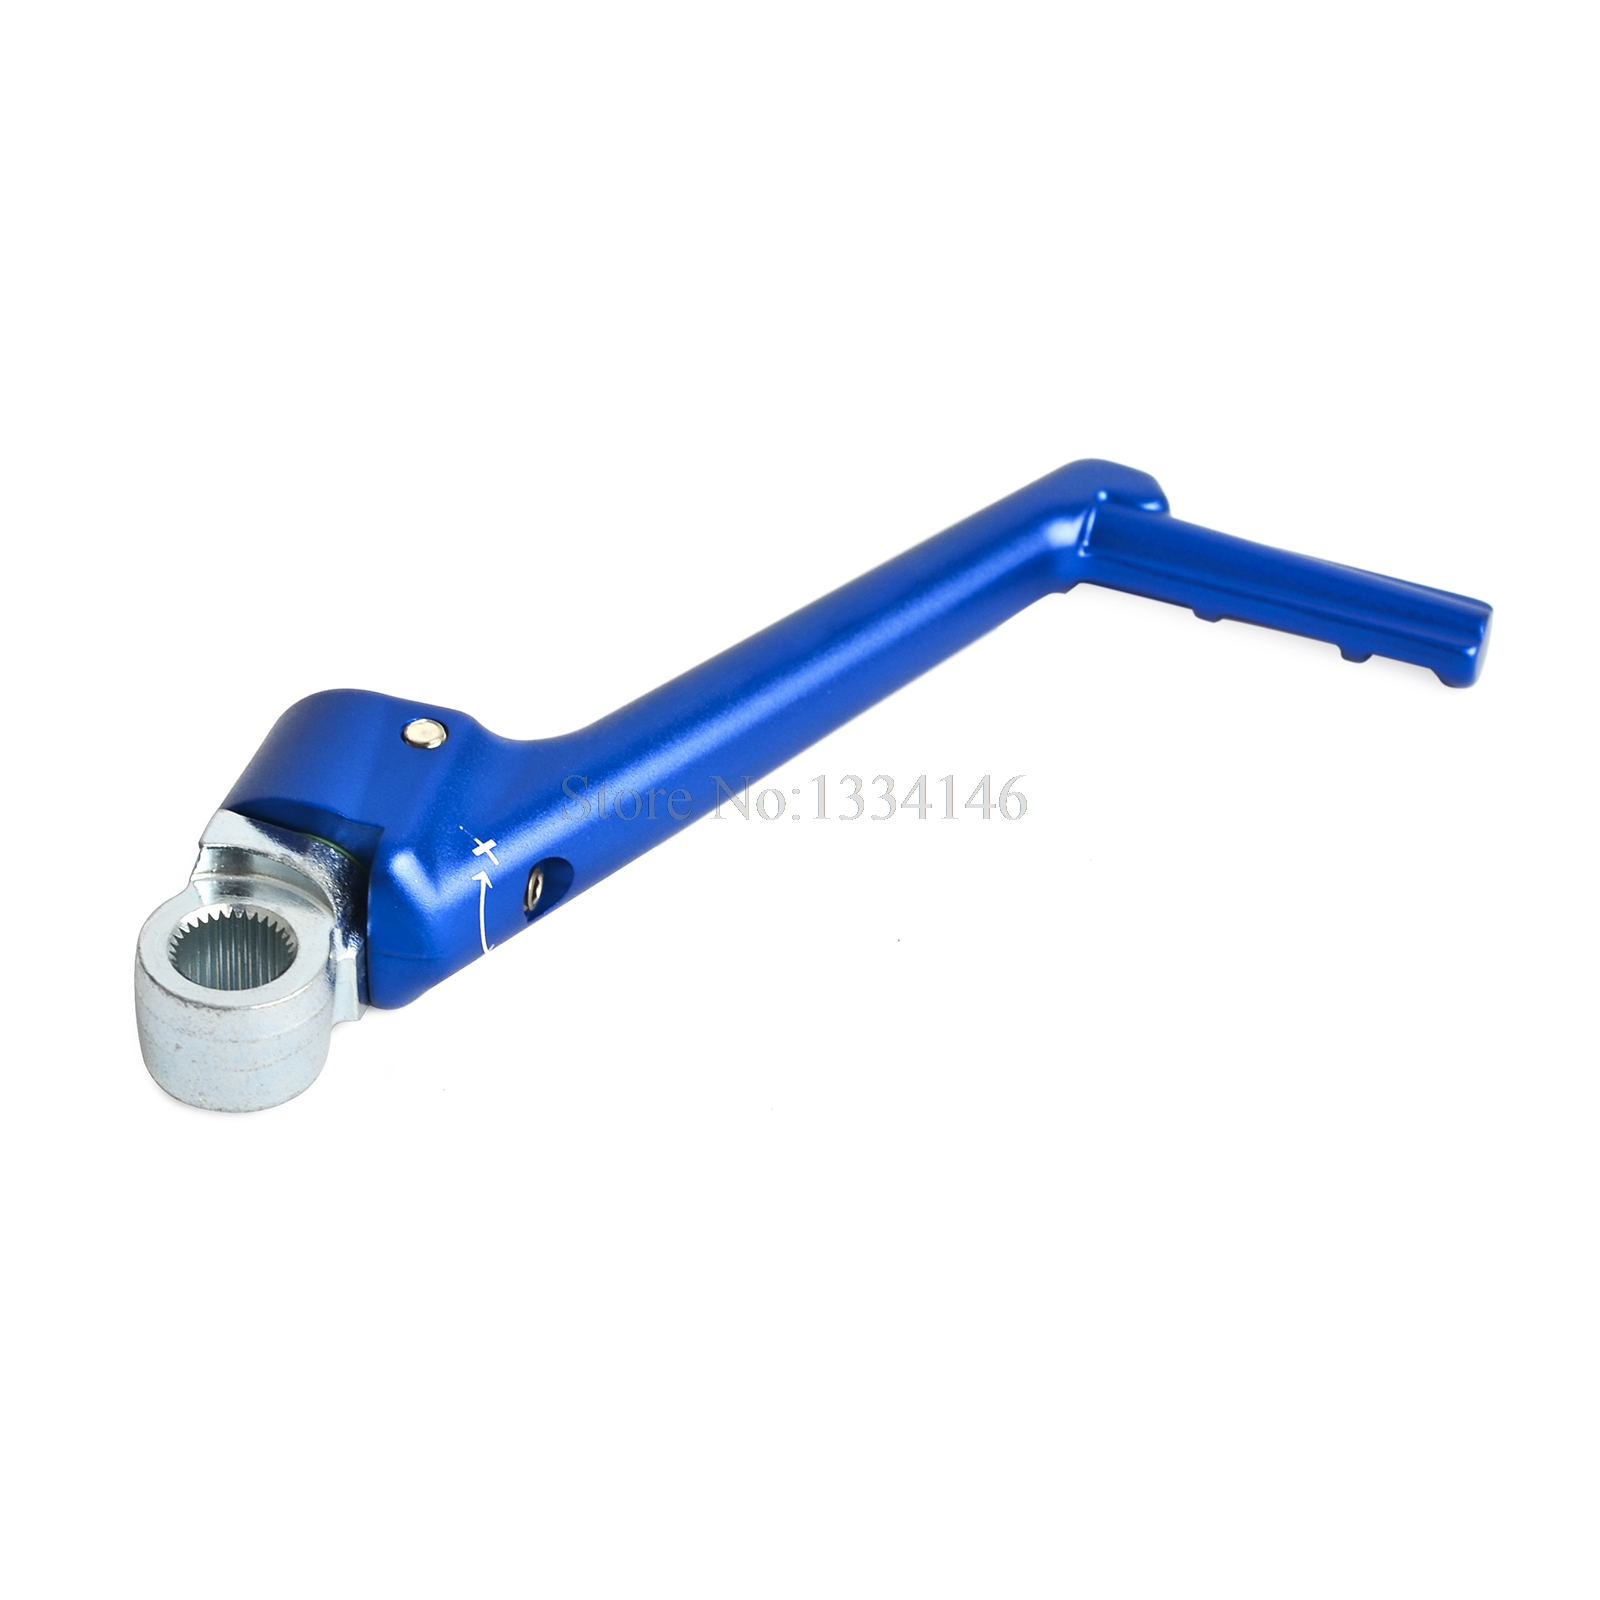 NICECNC Motorcycle Dirt Bike Forged Kick Start Starter Lever Pedal For Yamaha YZ125 YZ 125 1986-2013 2014 2015 2016 2017 2018 forged kick start starter lever pedal for yamaha yz450f 2011 2015 motocross enduro motorcycle supermoto dirt pit bike off road